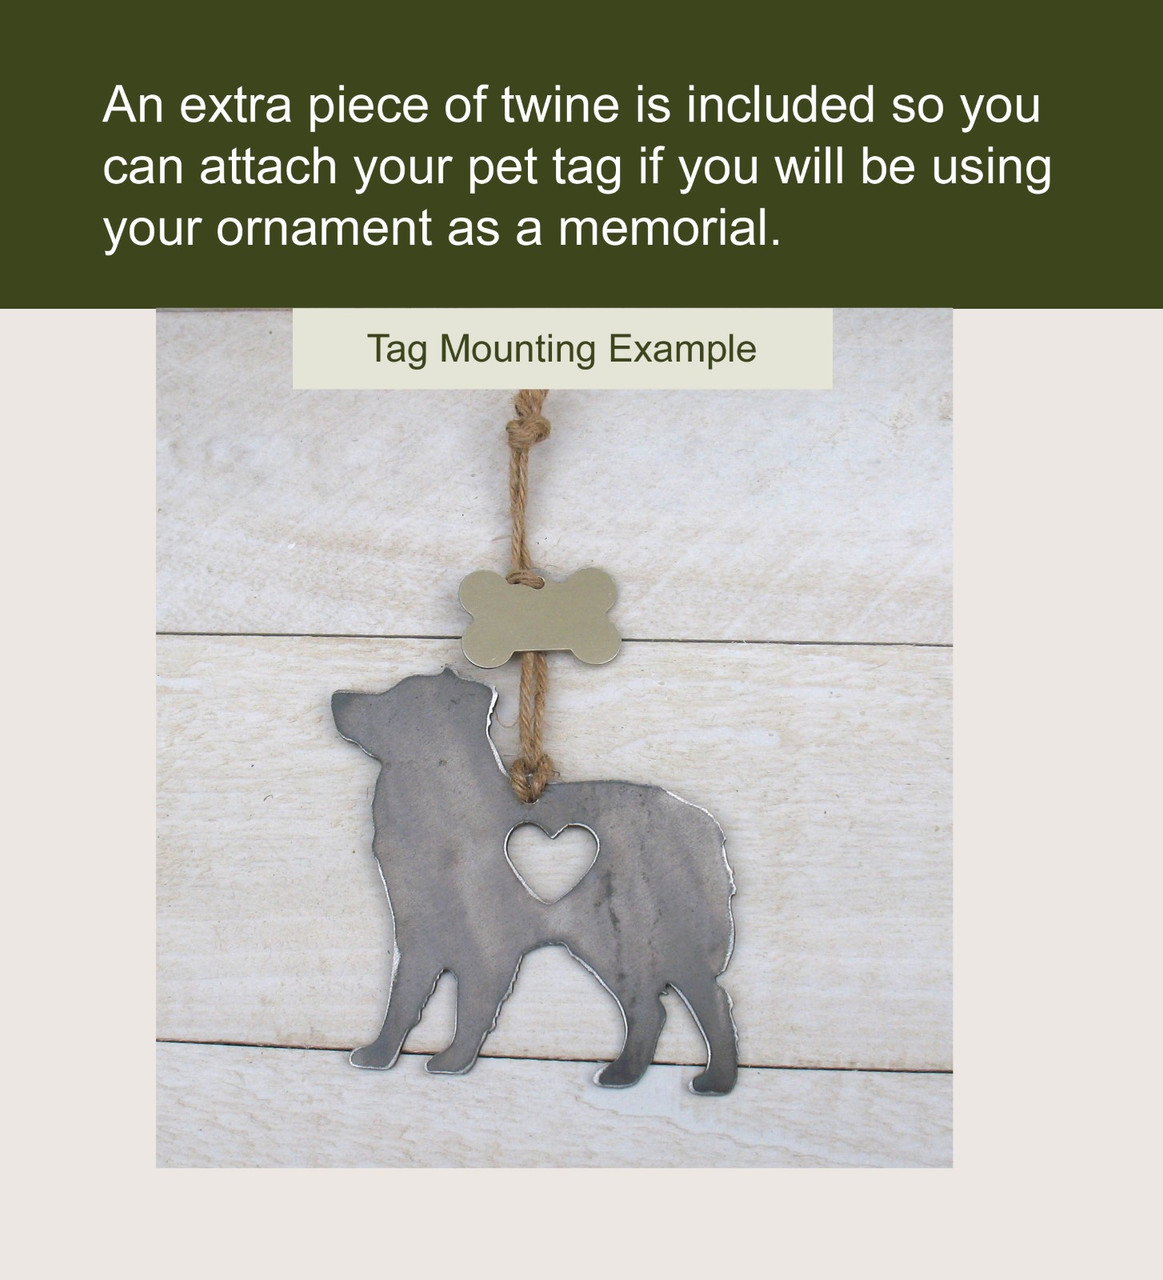 Dachshund Dog Ornament 2 Pet Memorial W/ Angel Wings - Pet Loss Dog Sympathy Remembrance Gift - Metal Dog Christmas Ornament